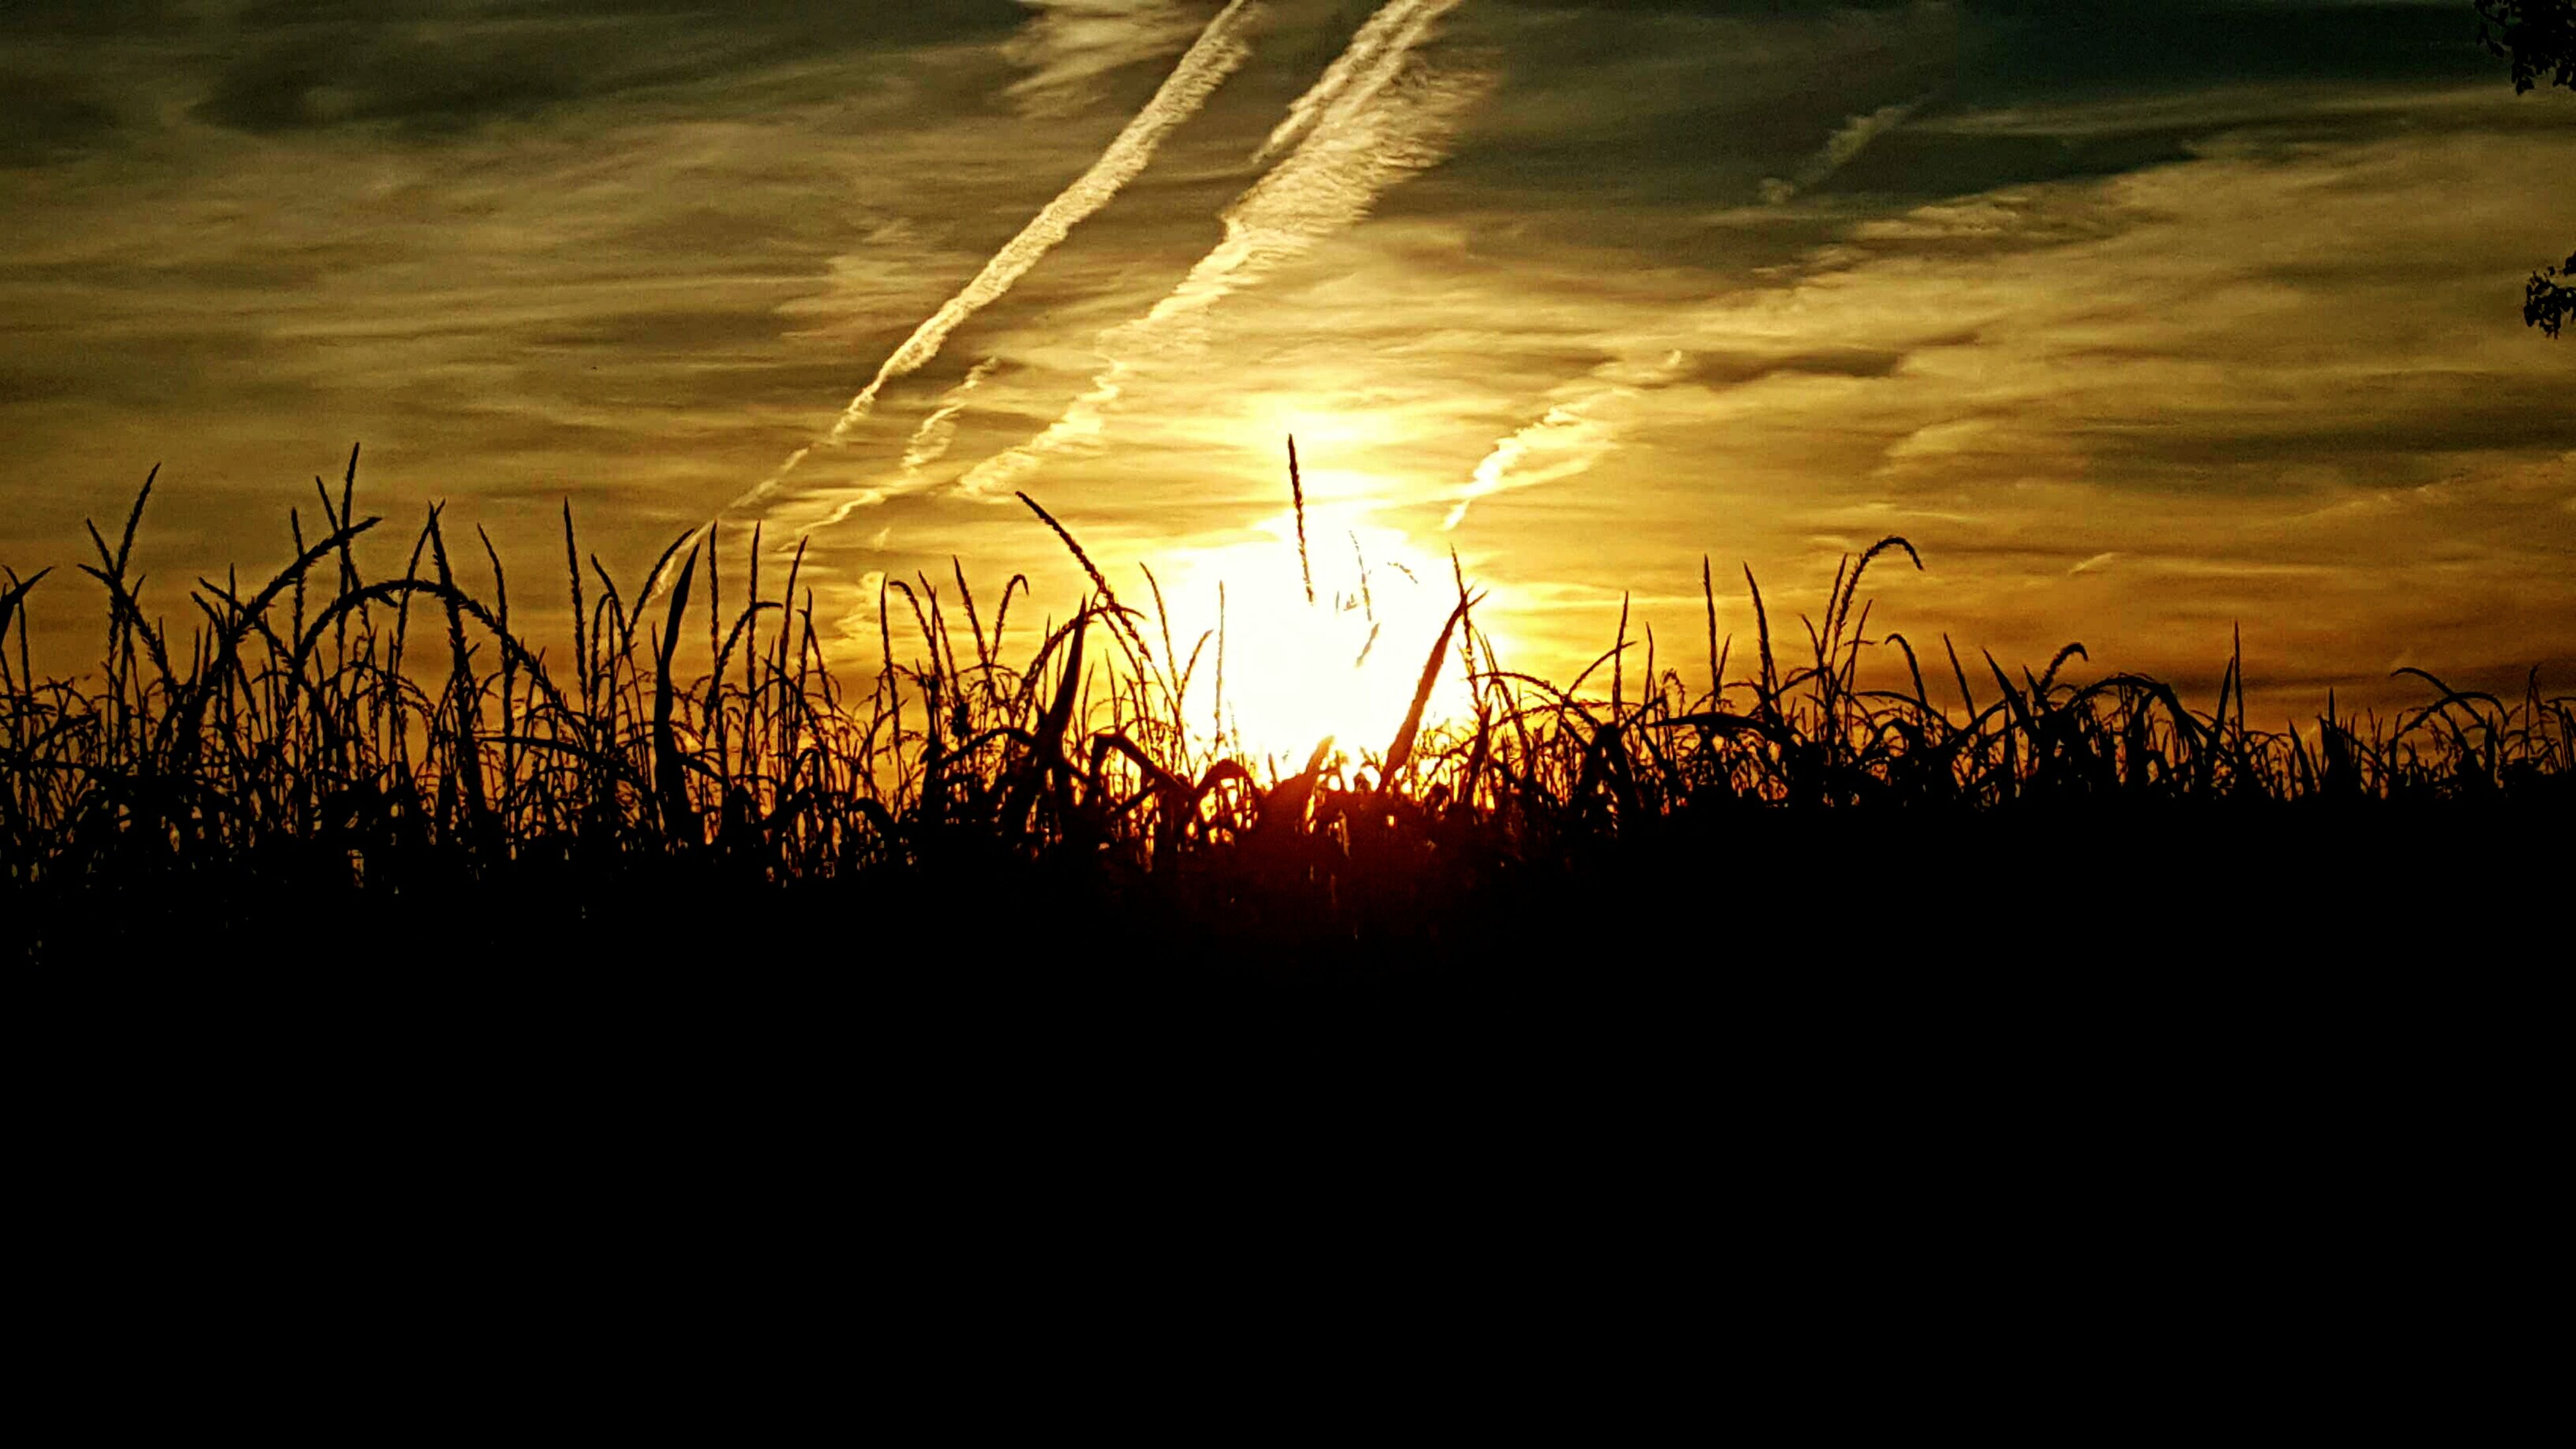 sunset, silhouette, tranquility, tranquil scene, sky, scenics, beauty in nature, nature, orange color, plant, sun, idyllic, dark, landscape, cloud - sky, field, growth, sunlight, outdoors, no people